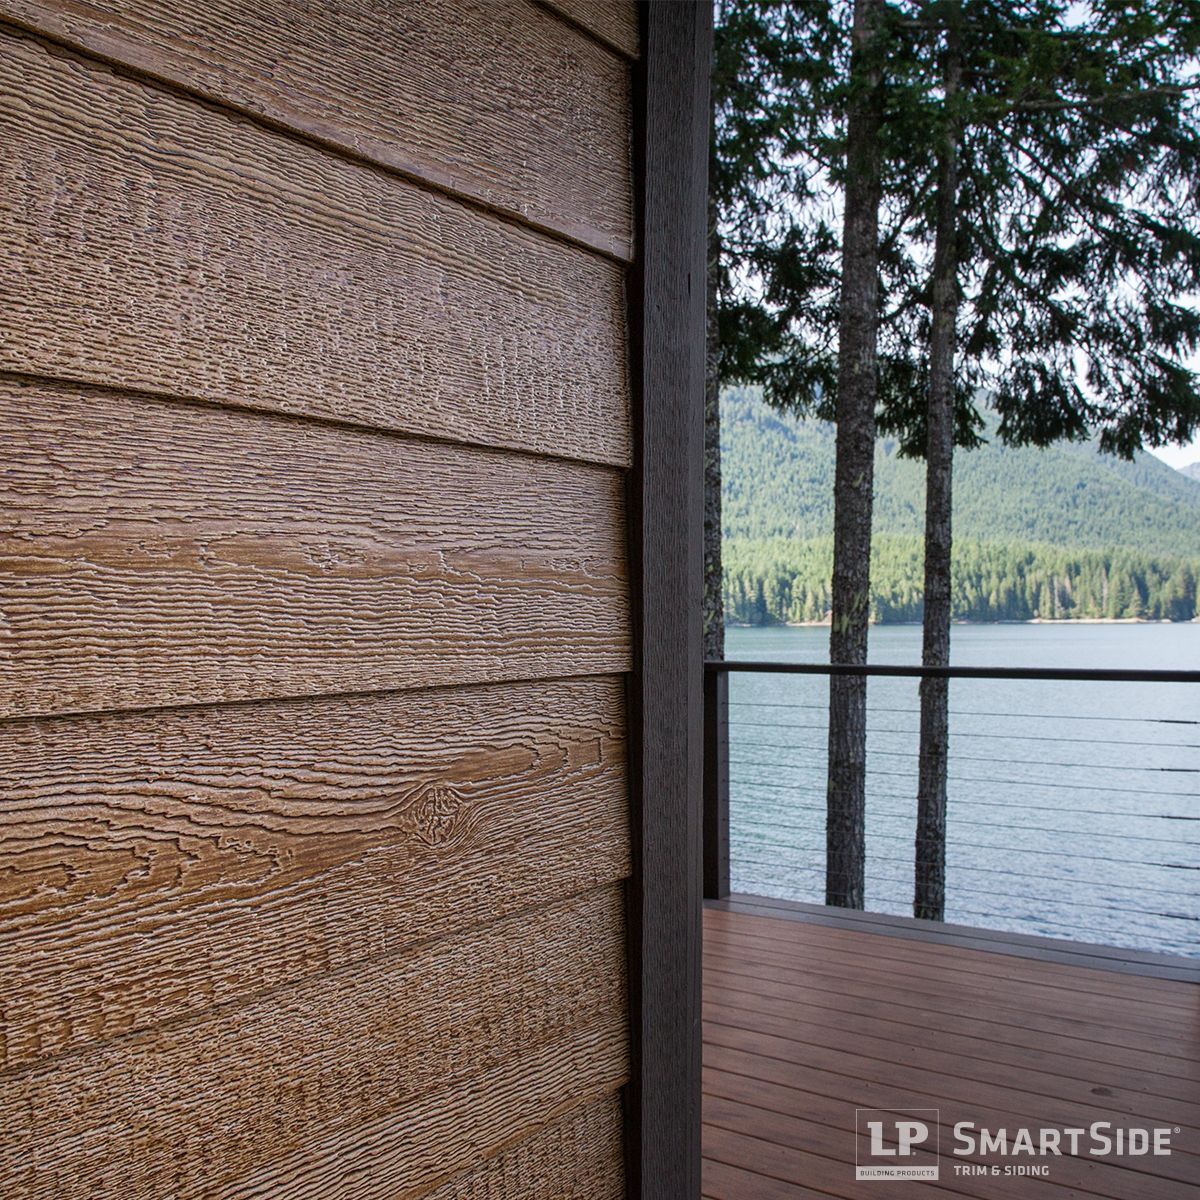 Take a good close look at the rich cedar grain of the lp for Homes with wood siding